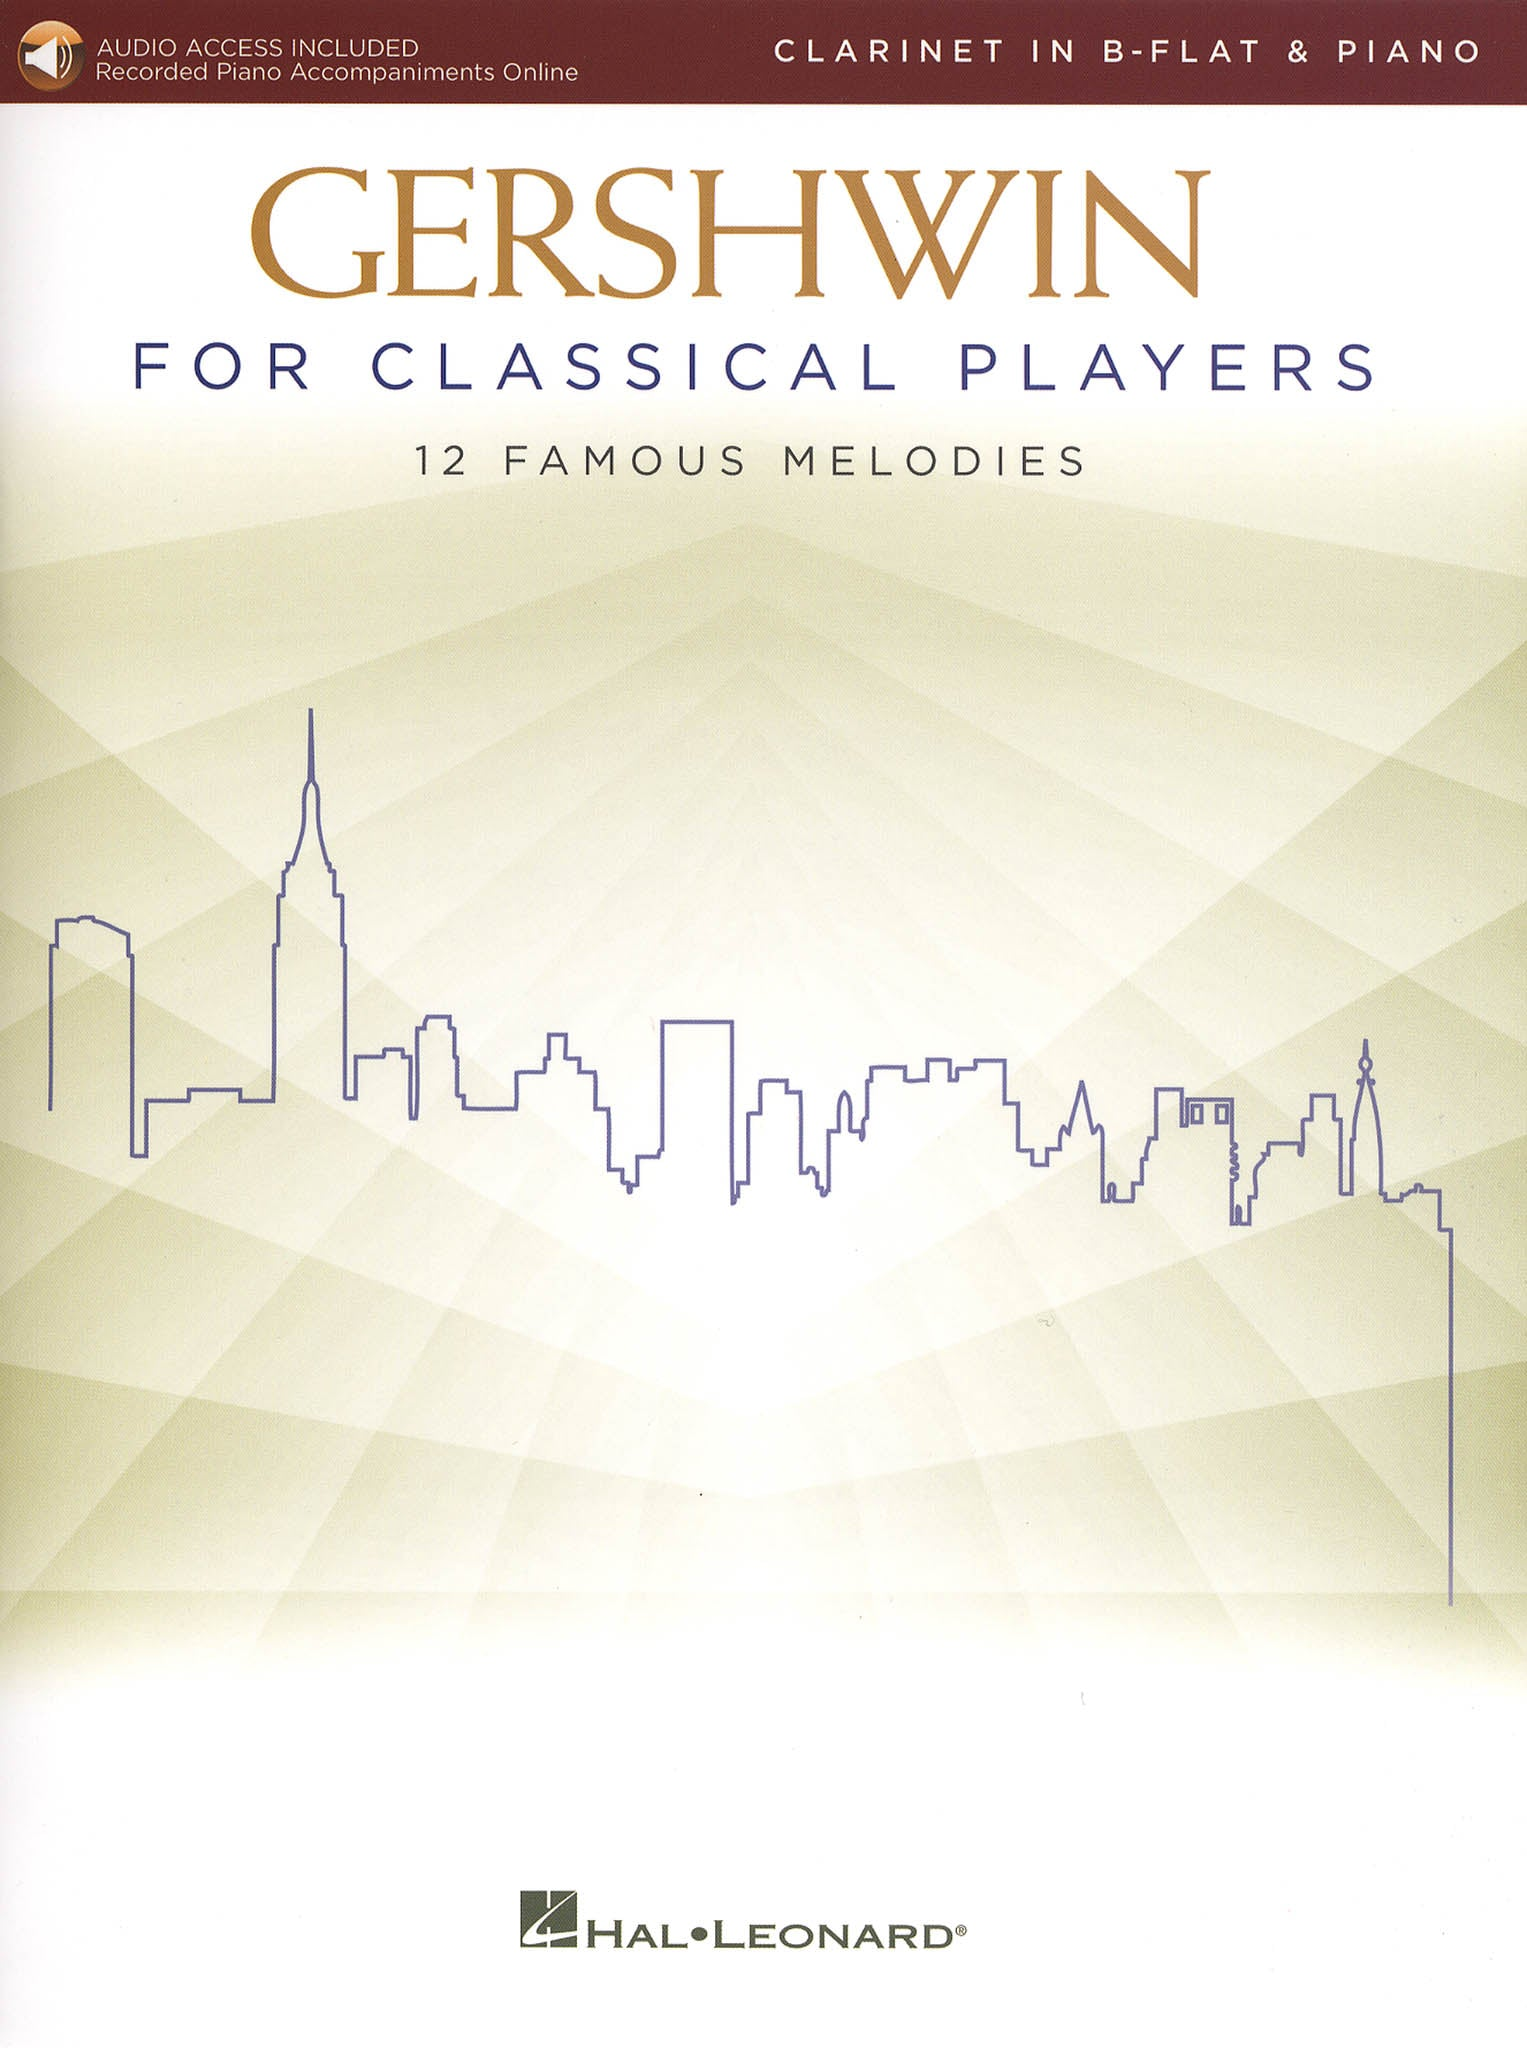 Gershwin for Classical Players Clarinet & Piano Arrangements Cover